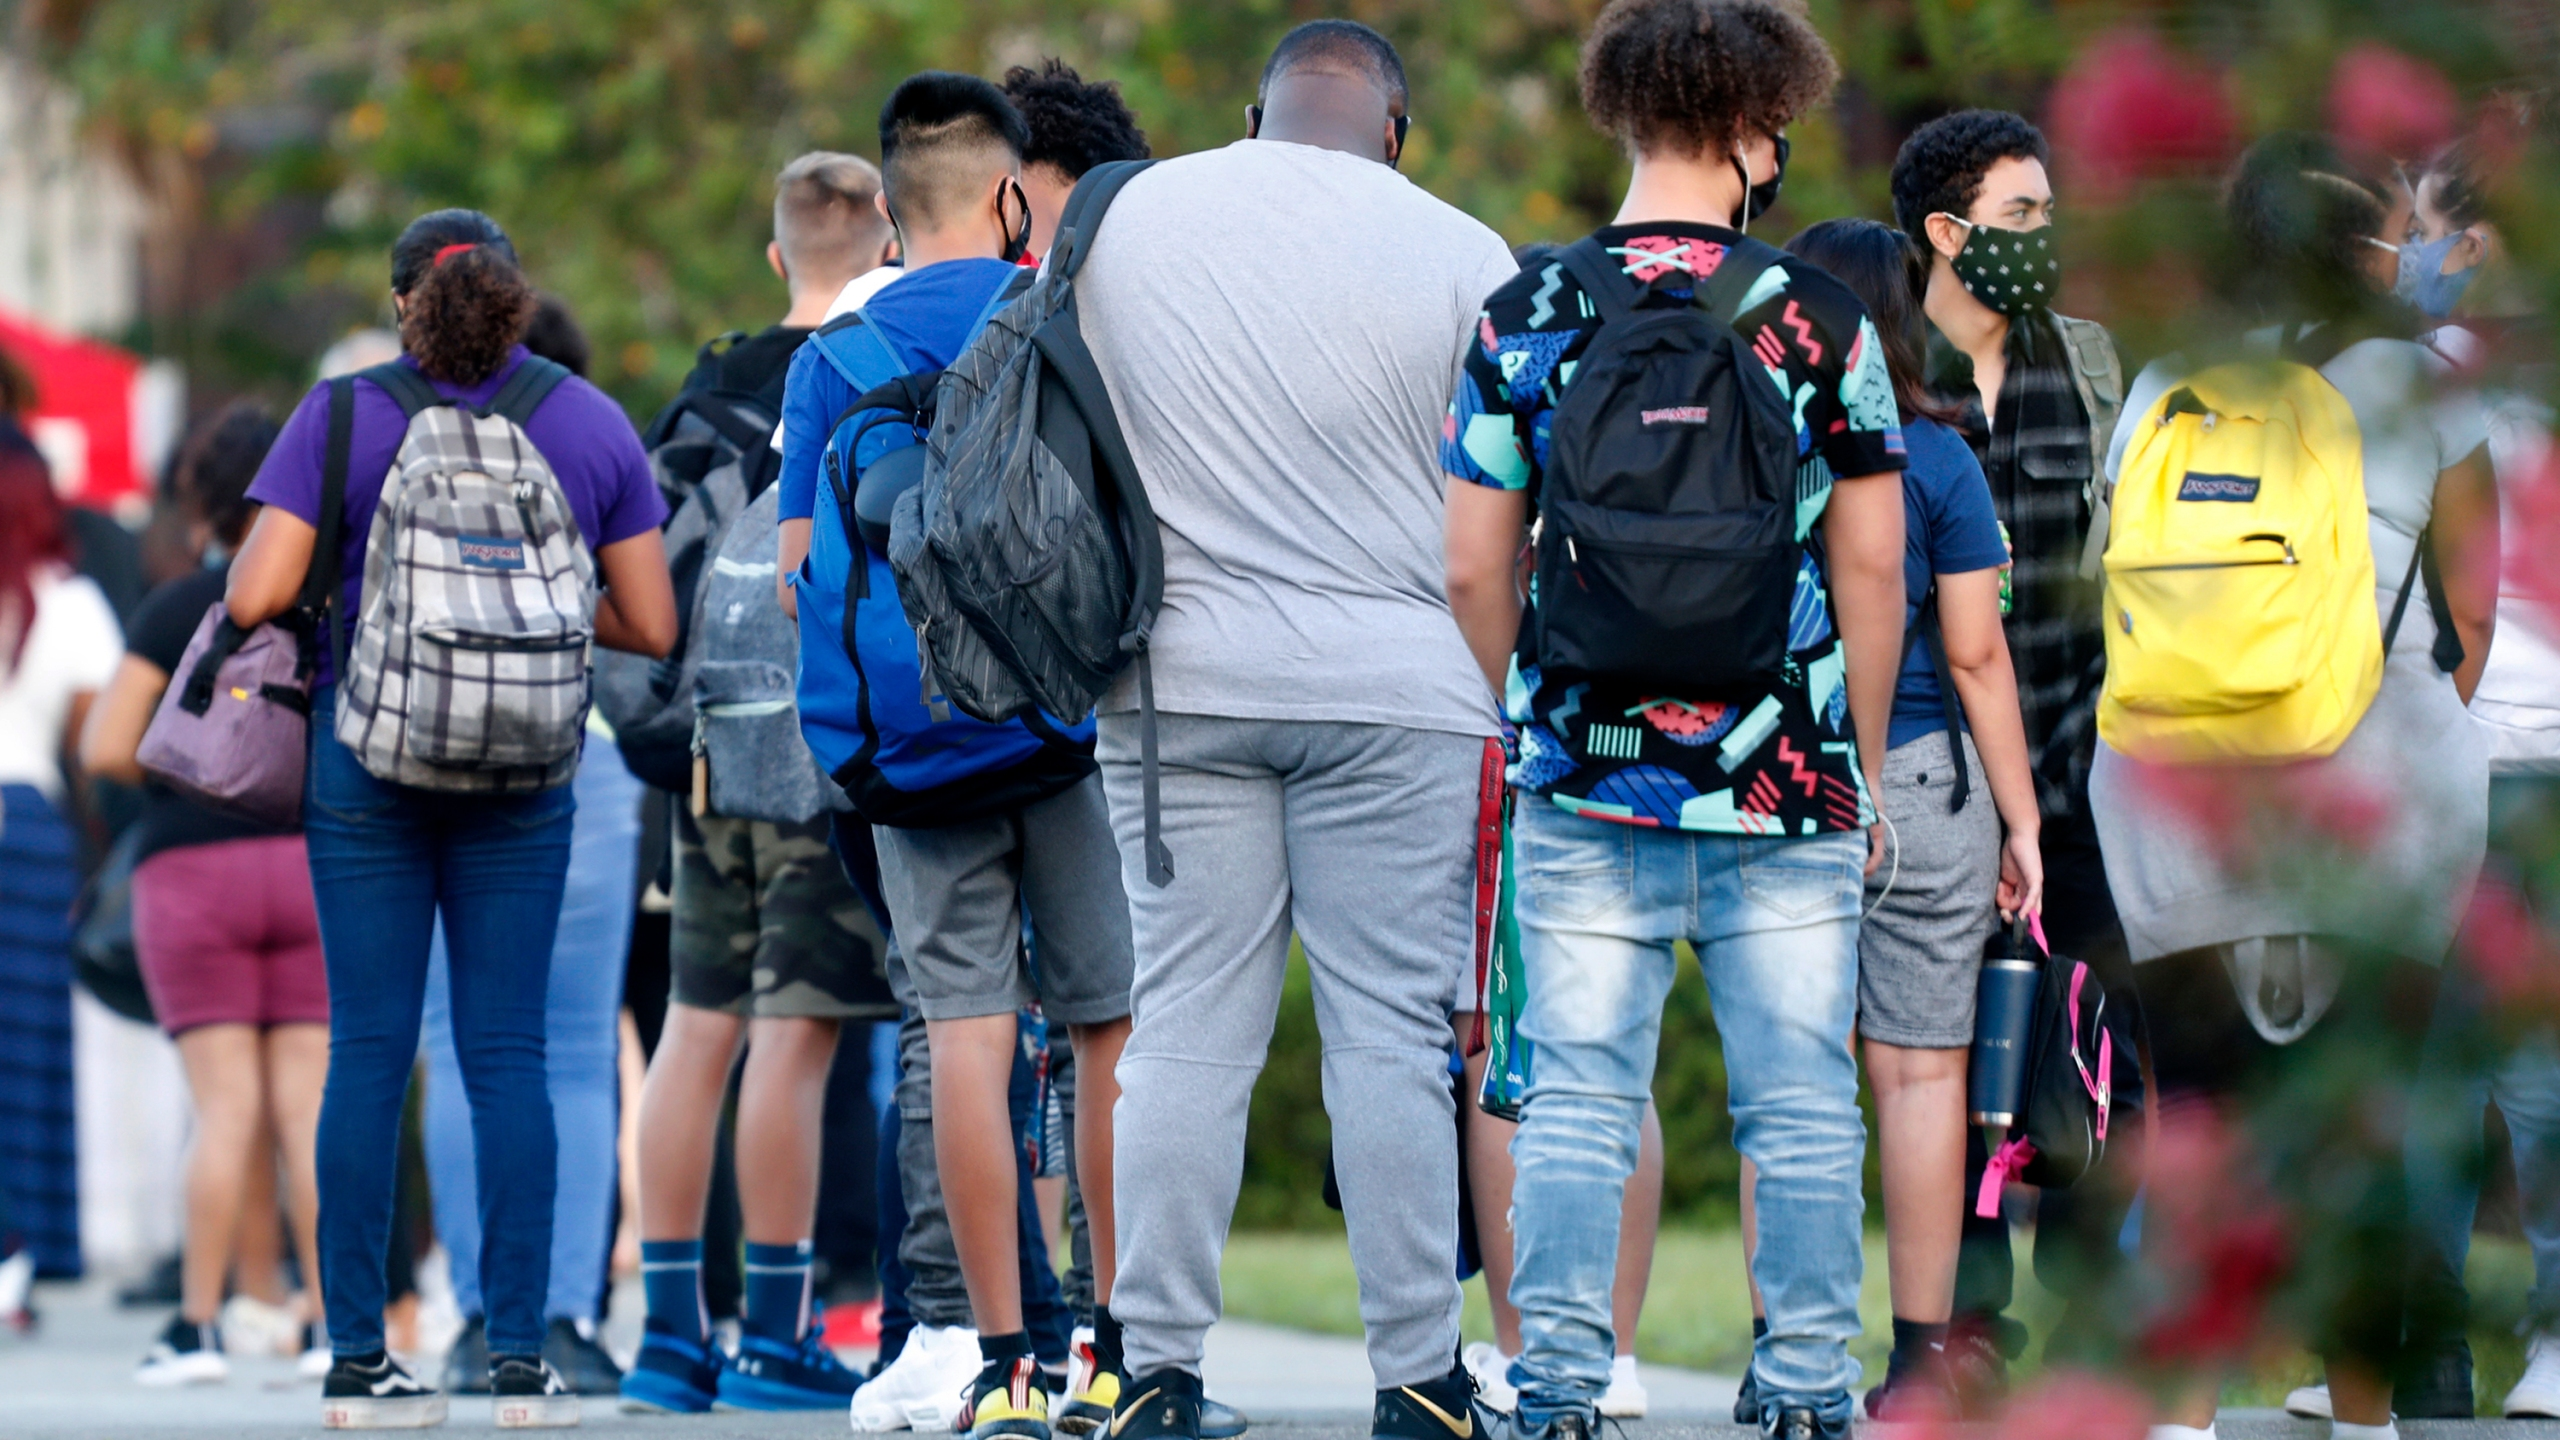 Students at Hillsborough High School in Tampa wait in line to have their temperature checked before entering the building on Aug. 31, 2020. (Octavio Jones / Getty Images)